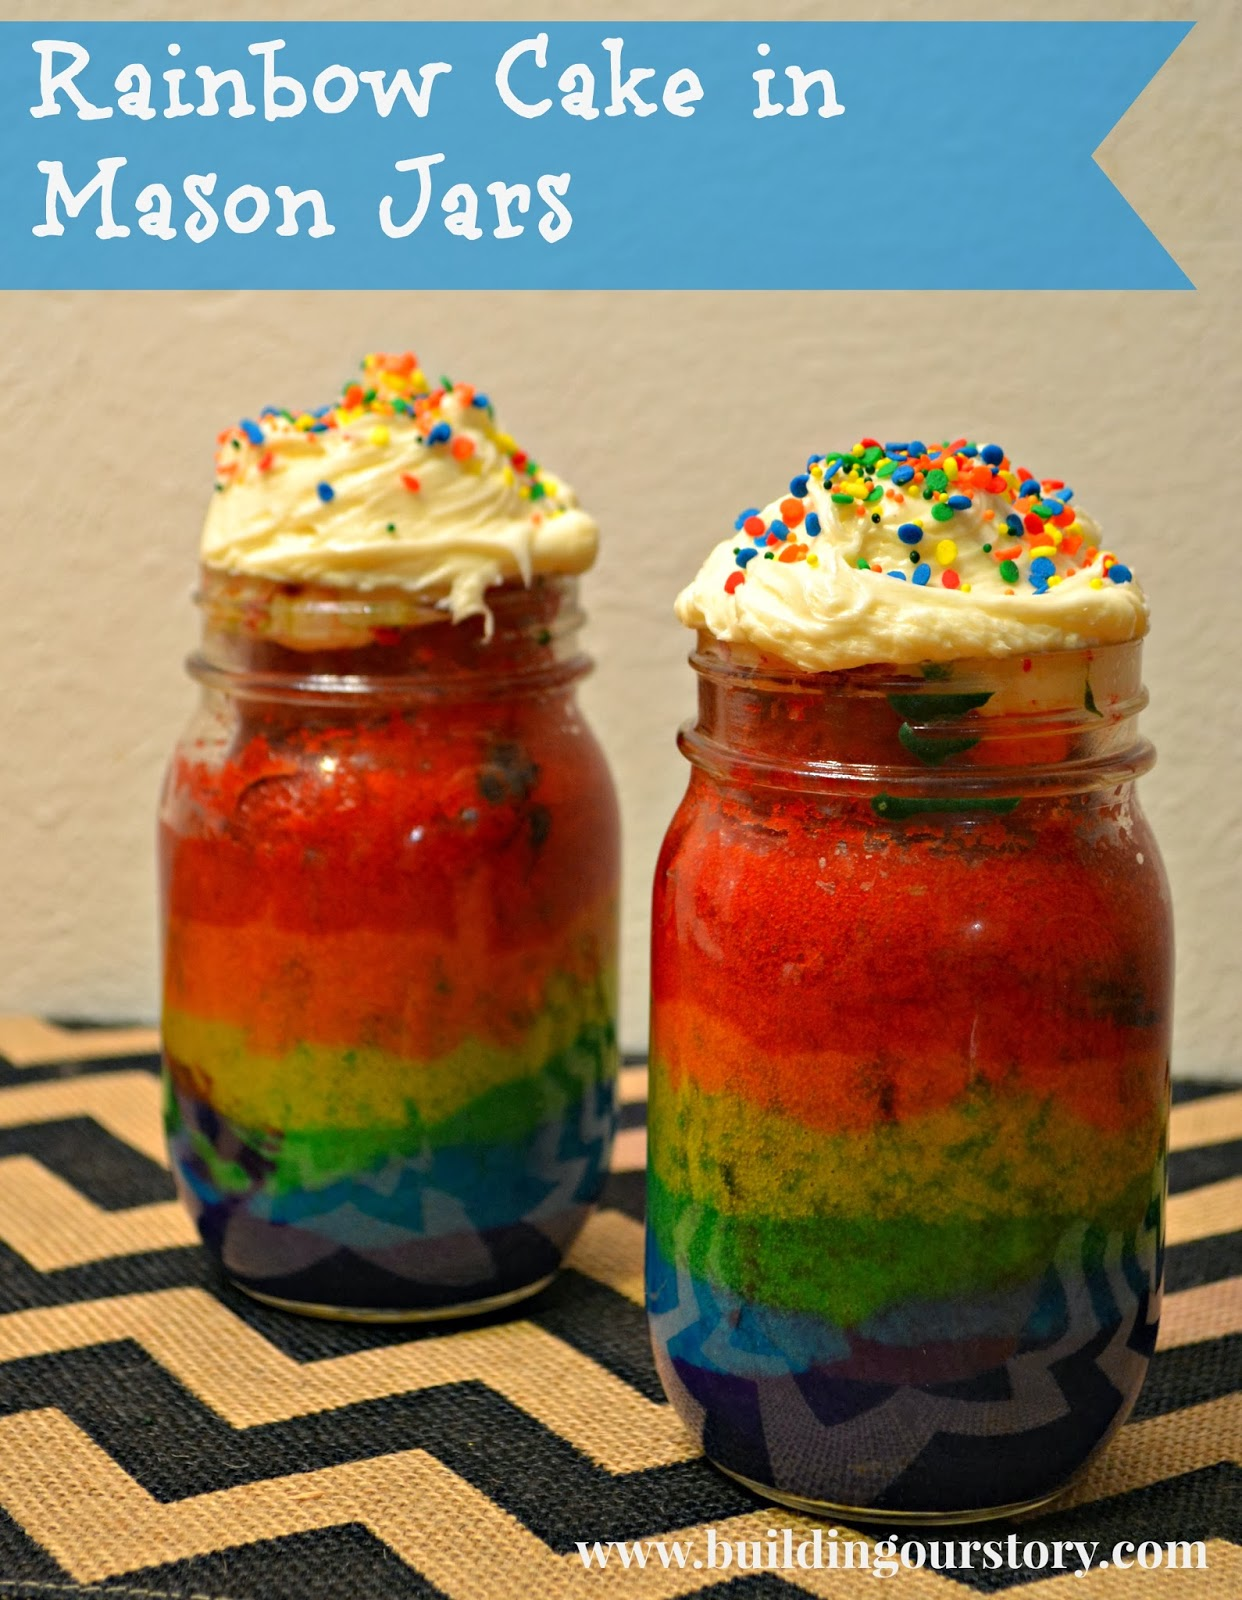 Rainbow Cake In A Mason Jar Recipe Building Our Story